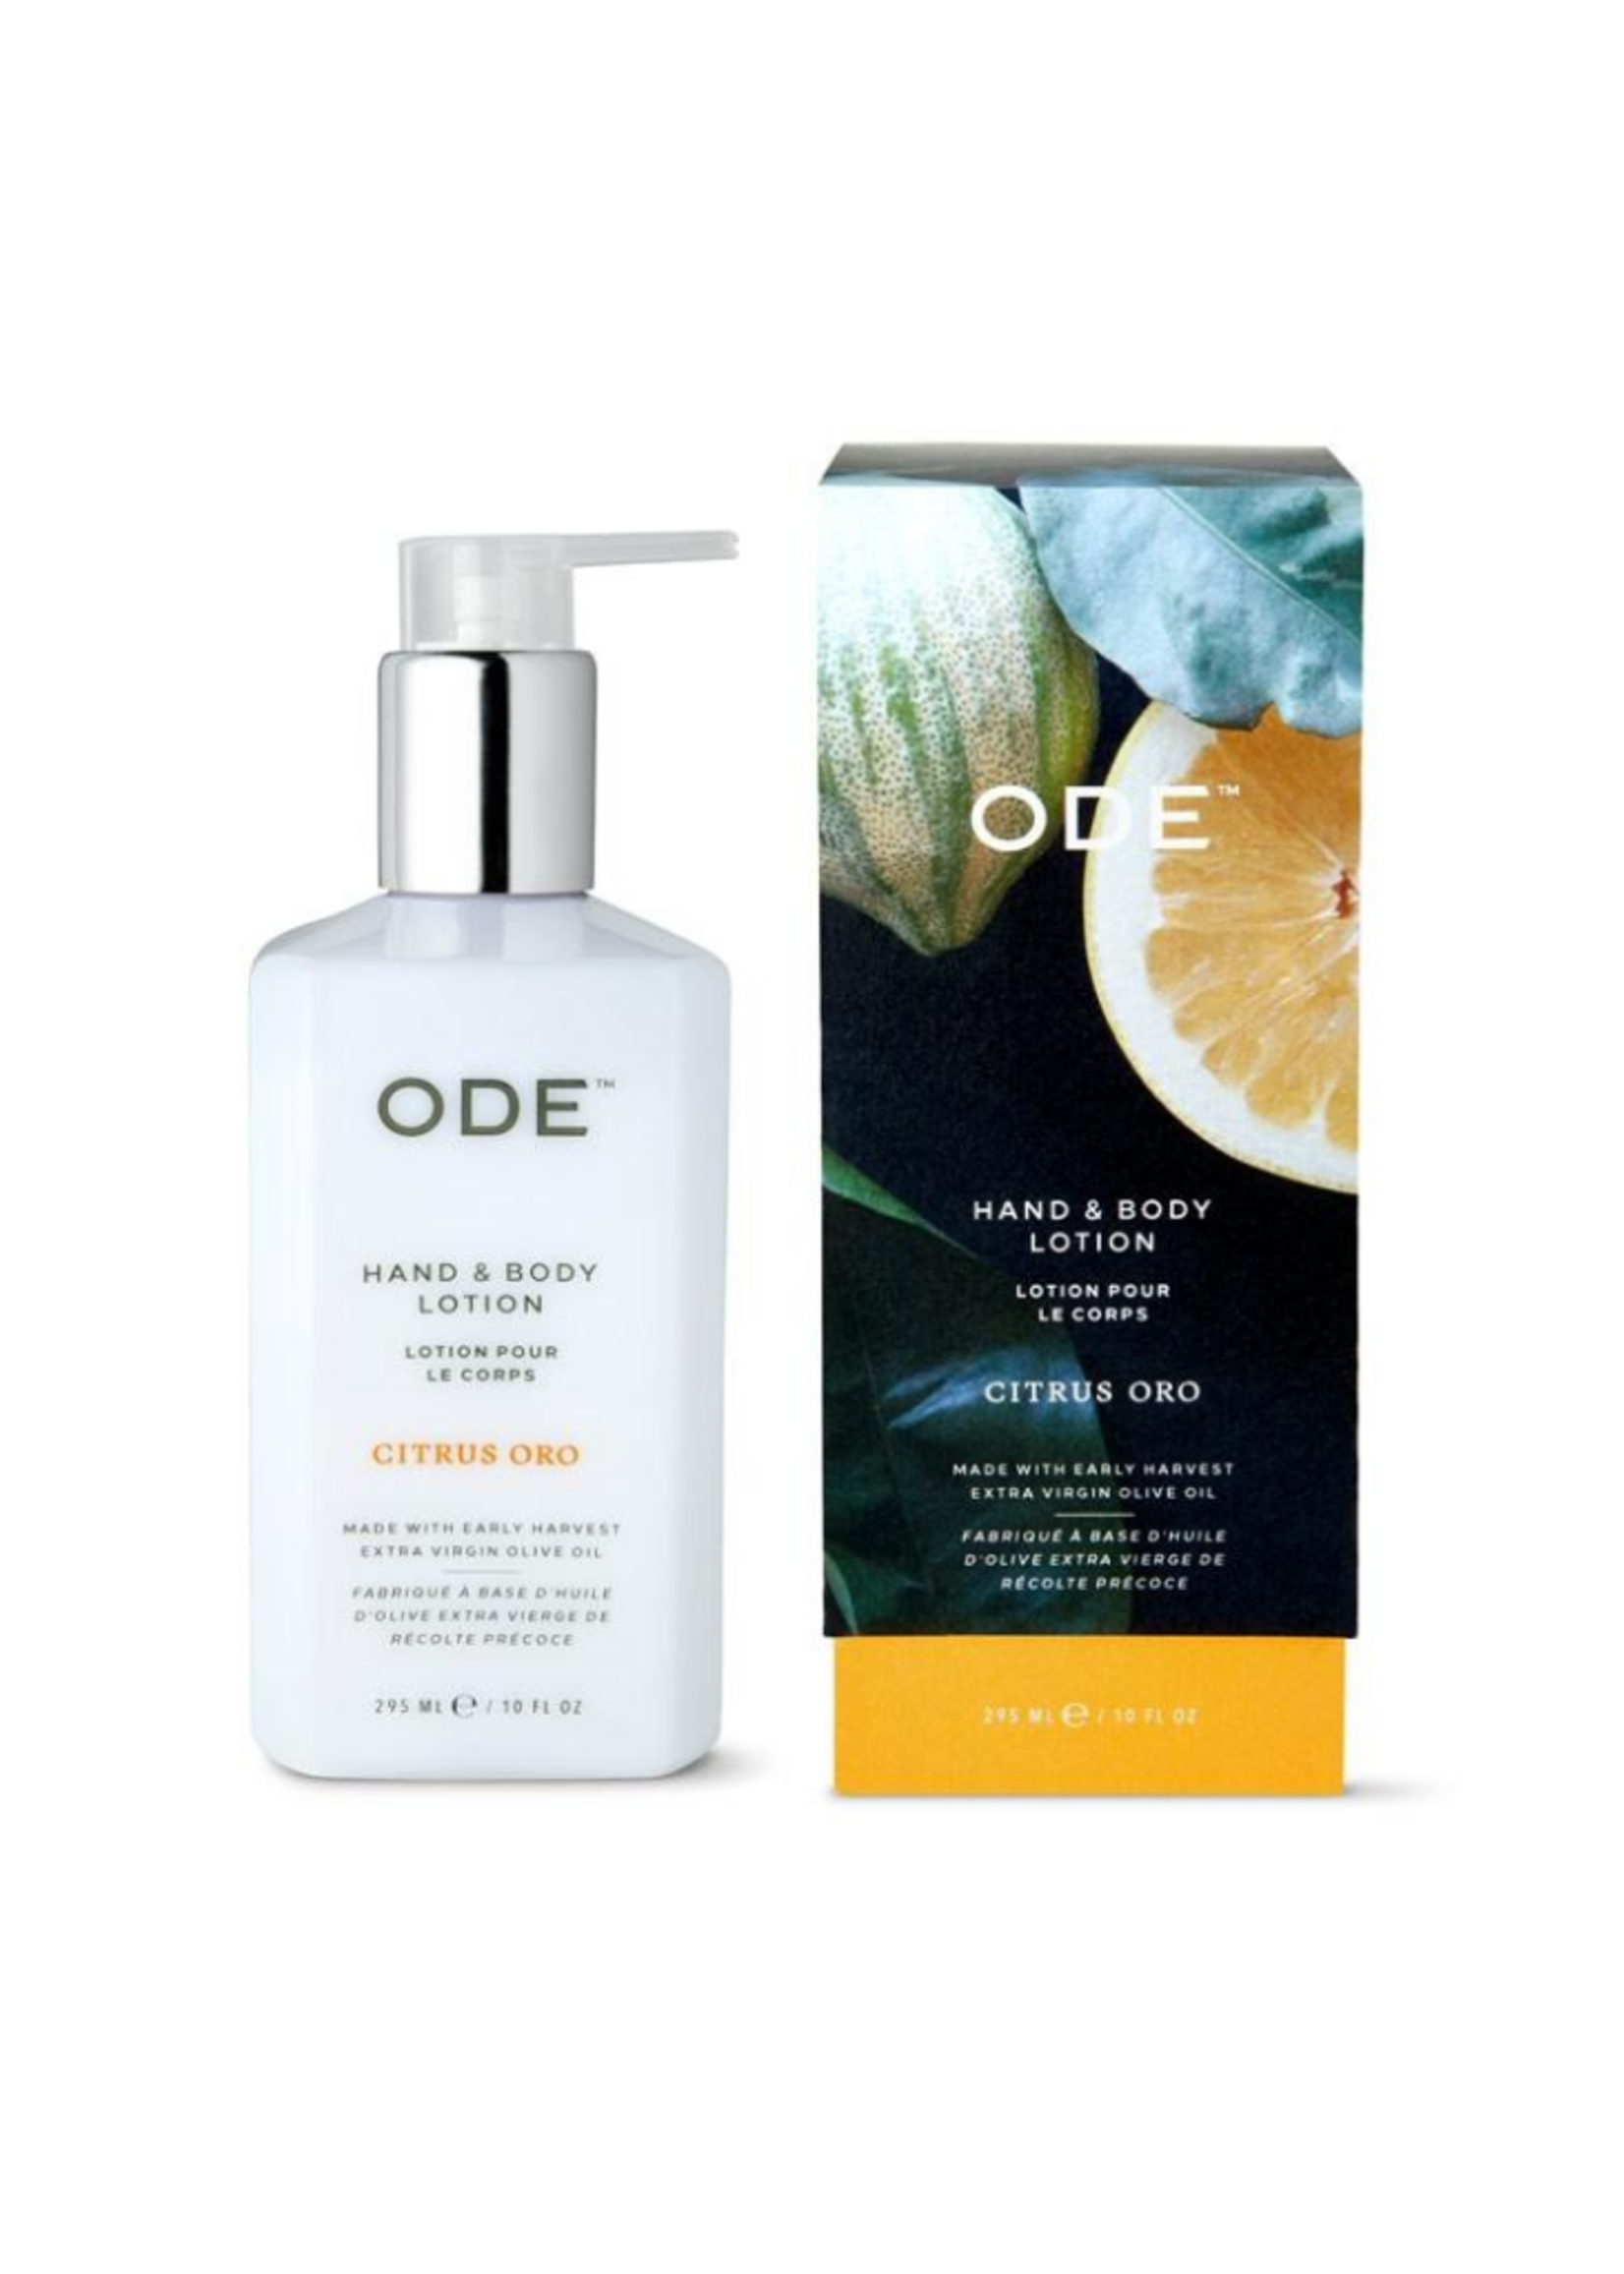 ODE ODE Citrus Oro Hand & Body Body Lotion